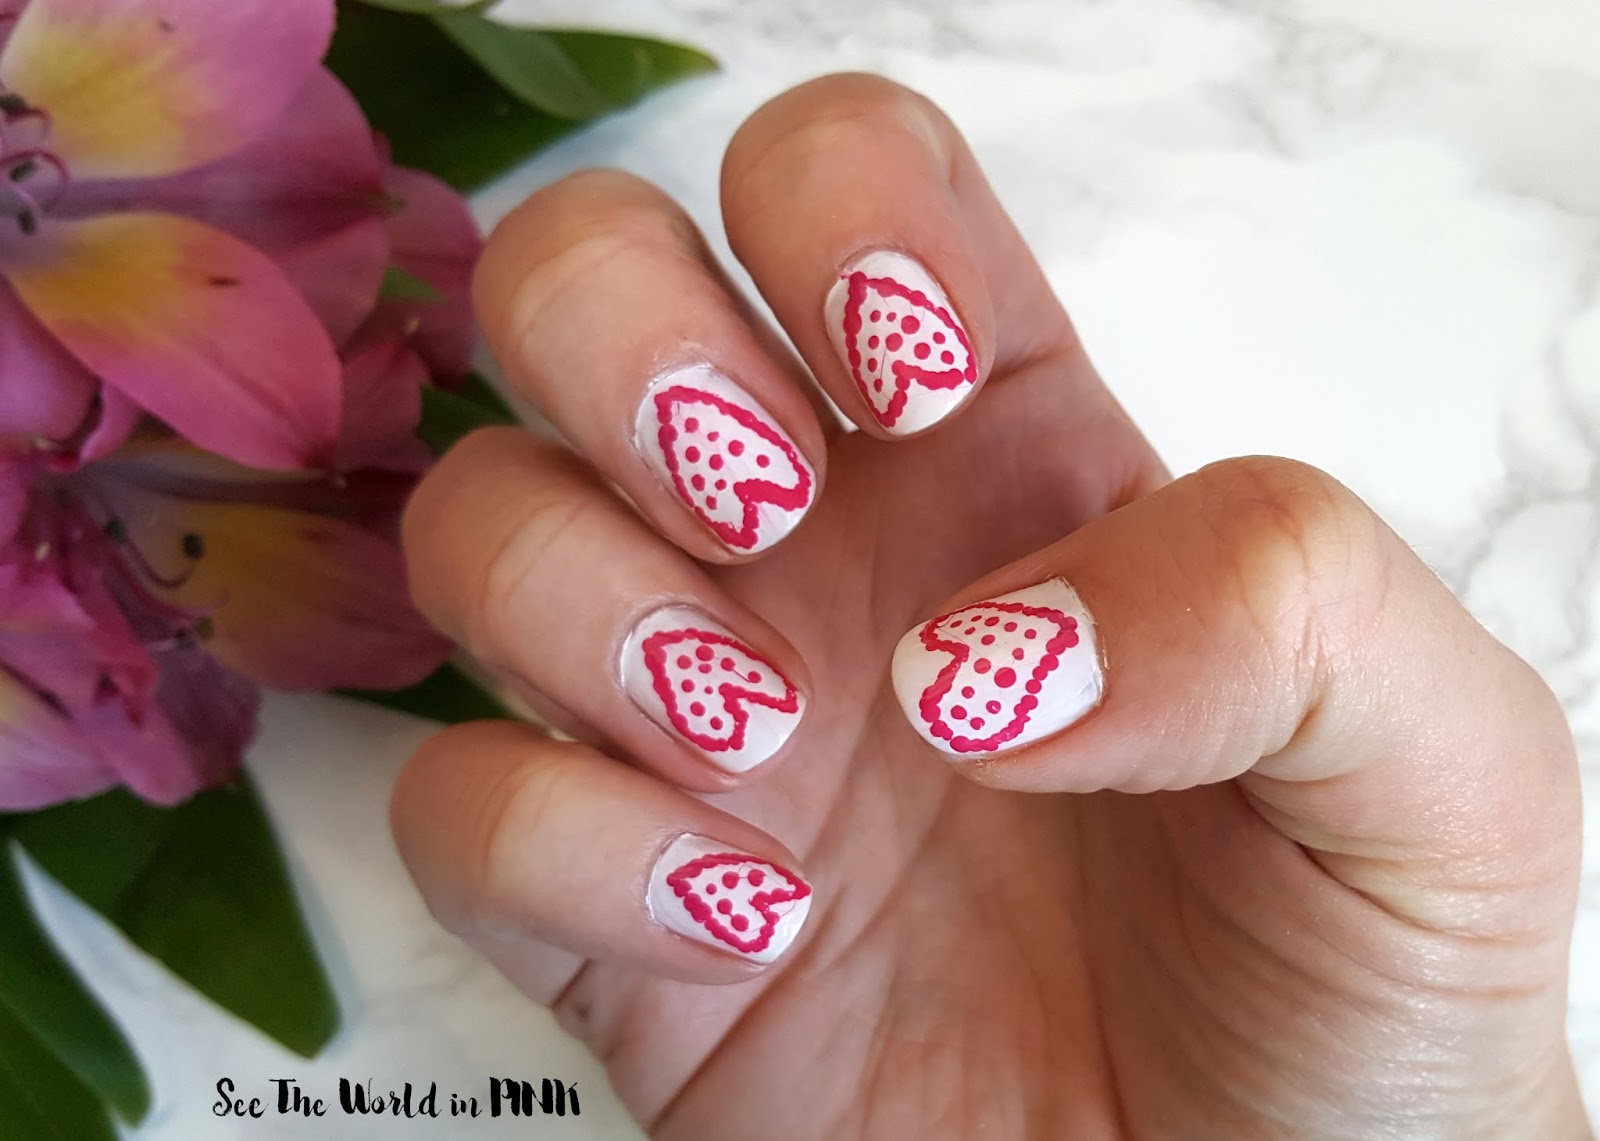 Manicure Monday - Polka Dot Heart Nail Art | See the World in PINK